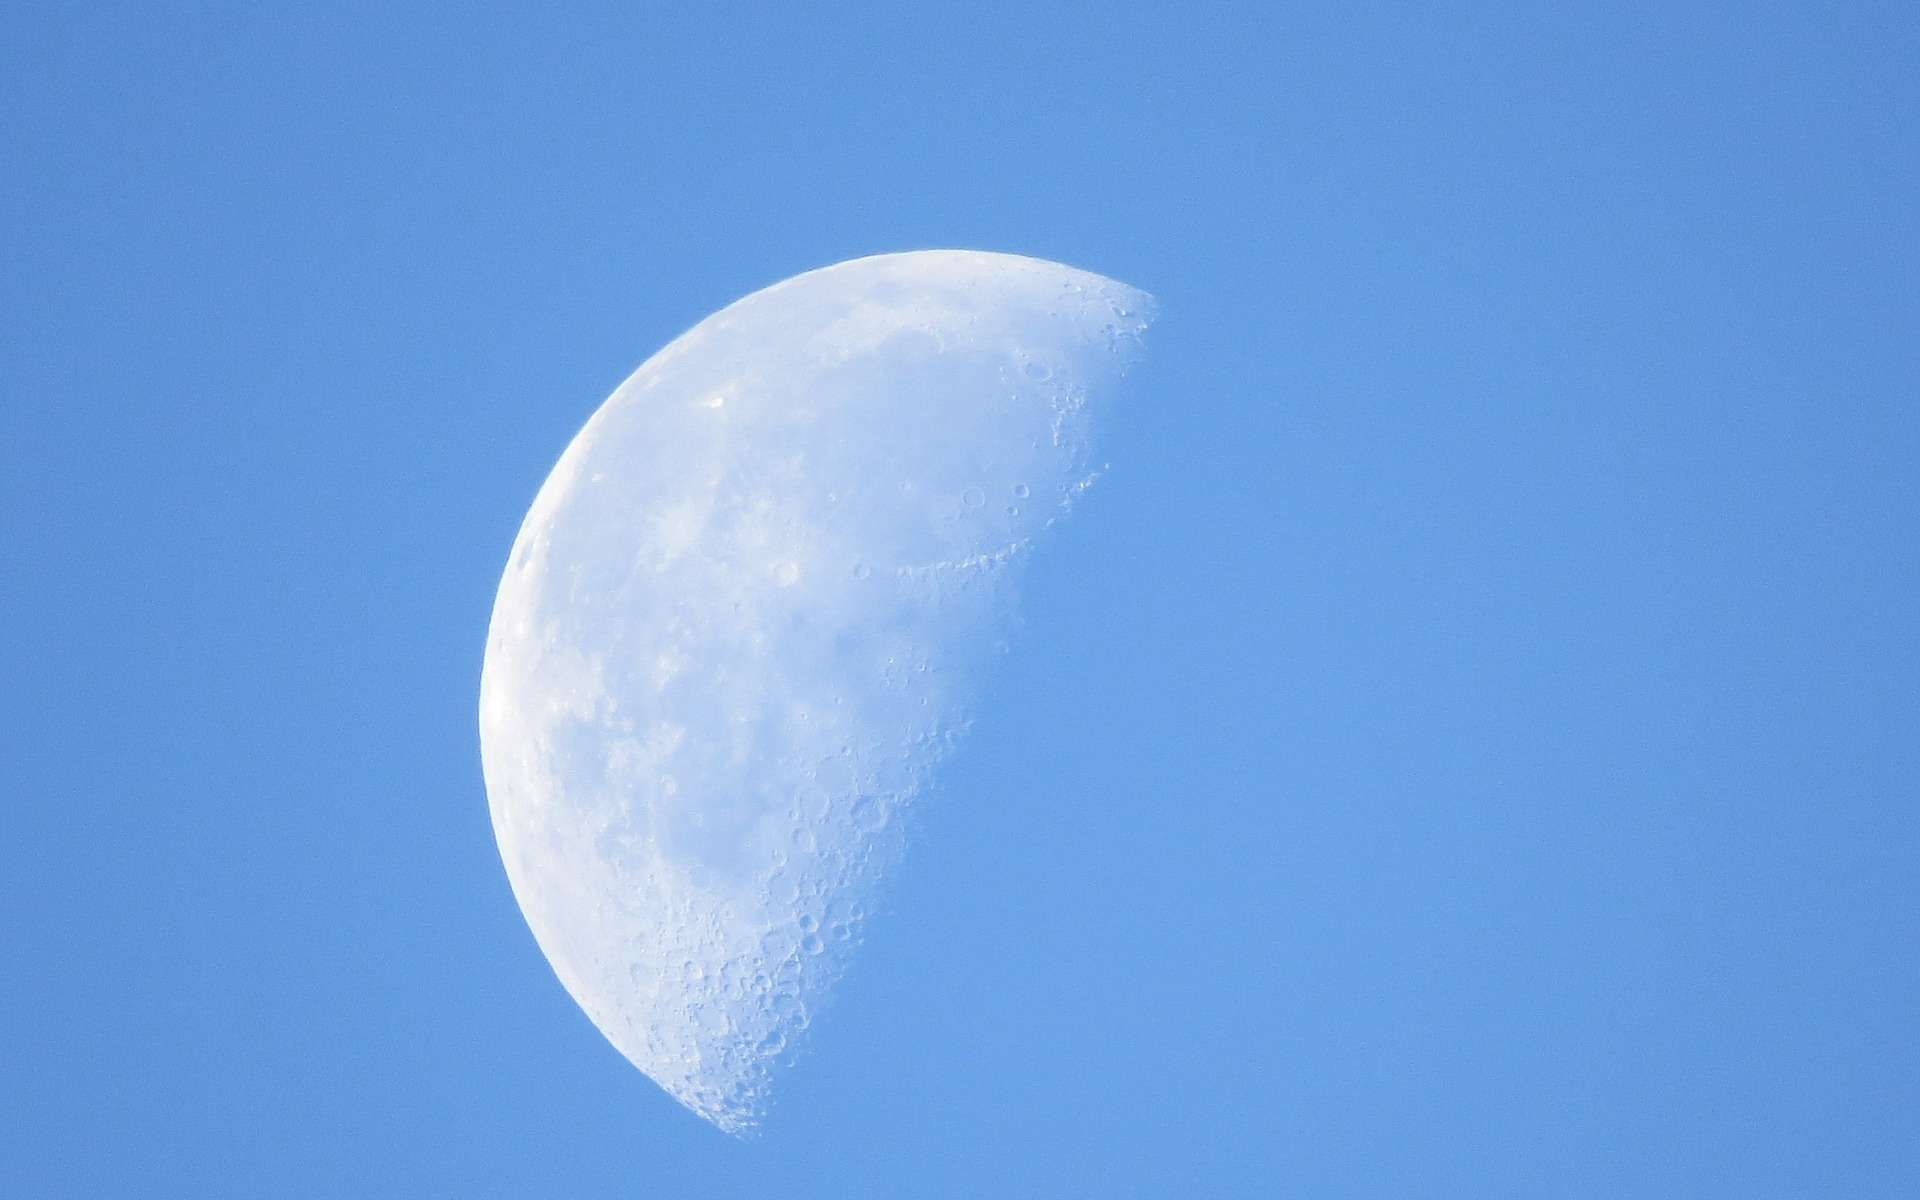 Why is the Moon visible in broad daylight?